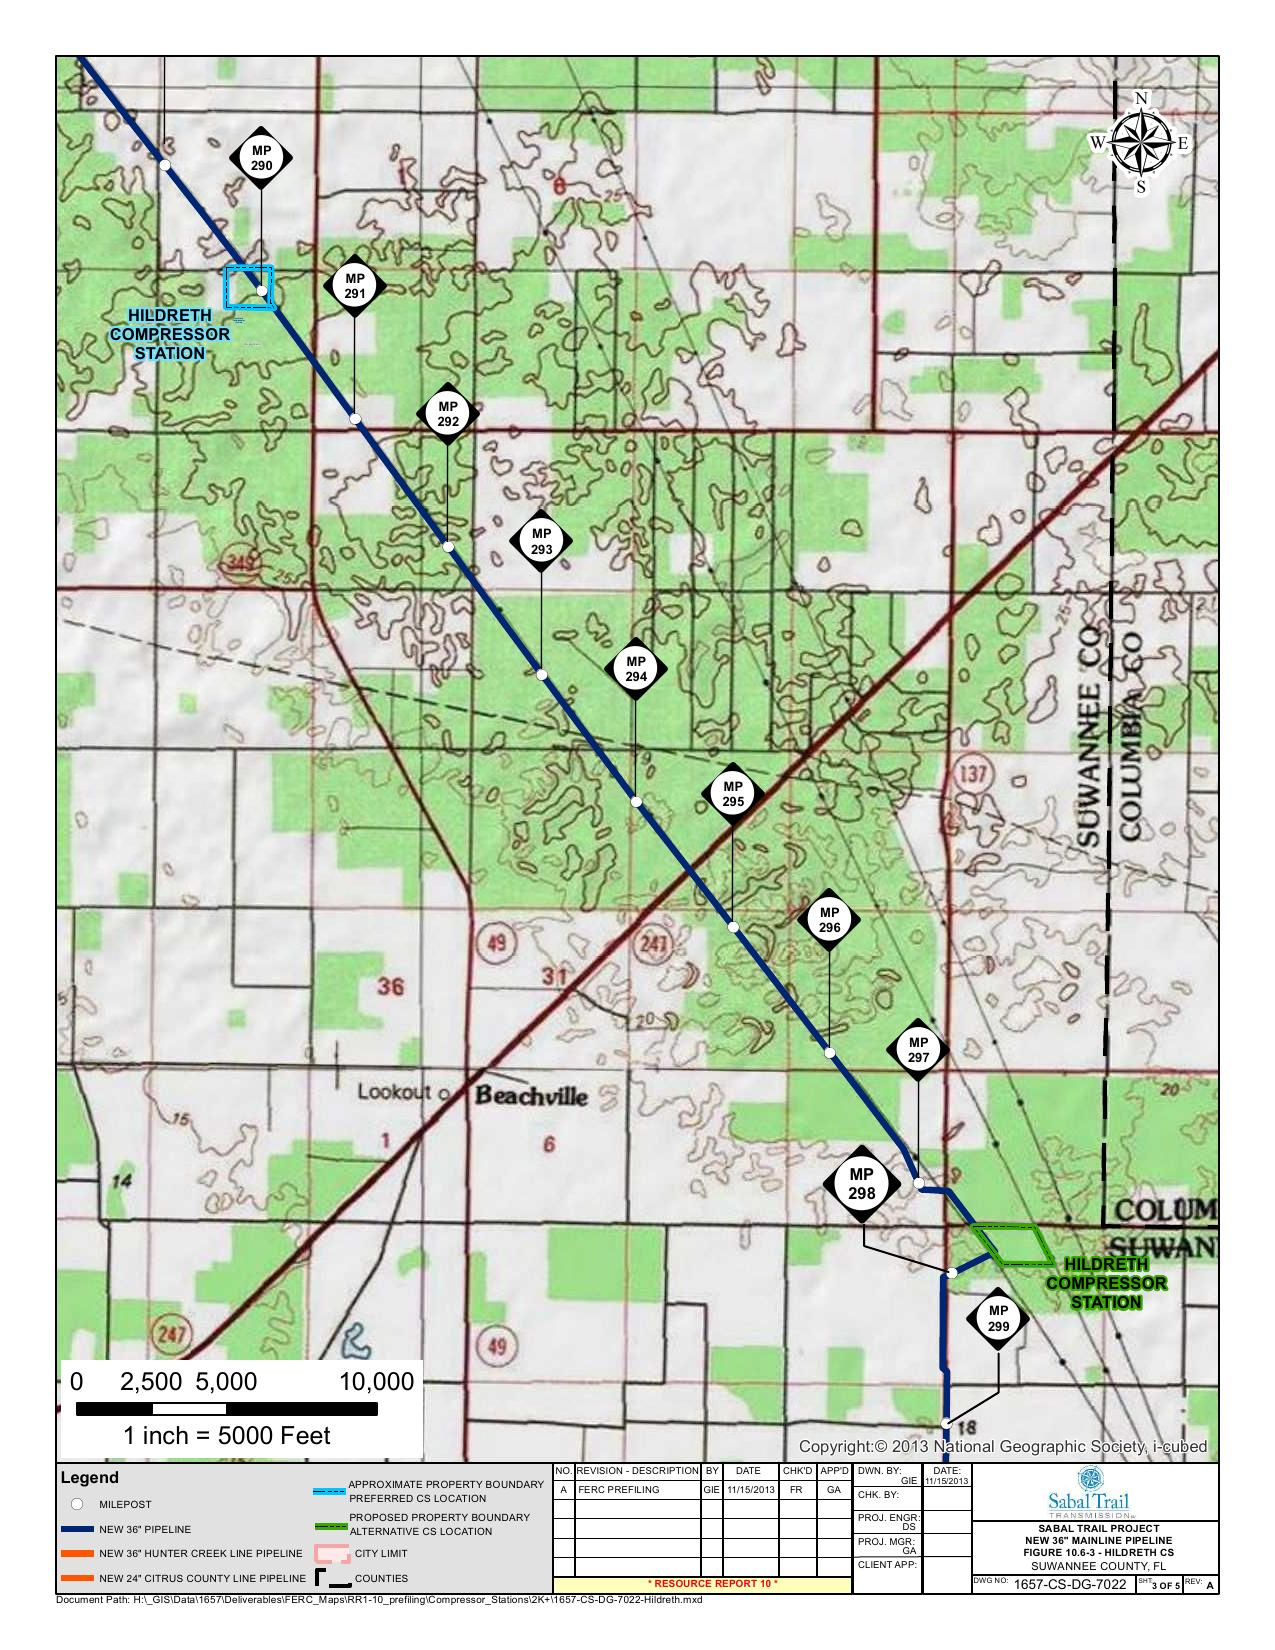 Hildreth Compressor Station, Suwannee County, Florida, in Alternatives, by Sabal Trail Transmission, for FERC Docket No. PF14-1-000, 15 November 2013, converted by SpectraBusters